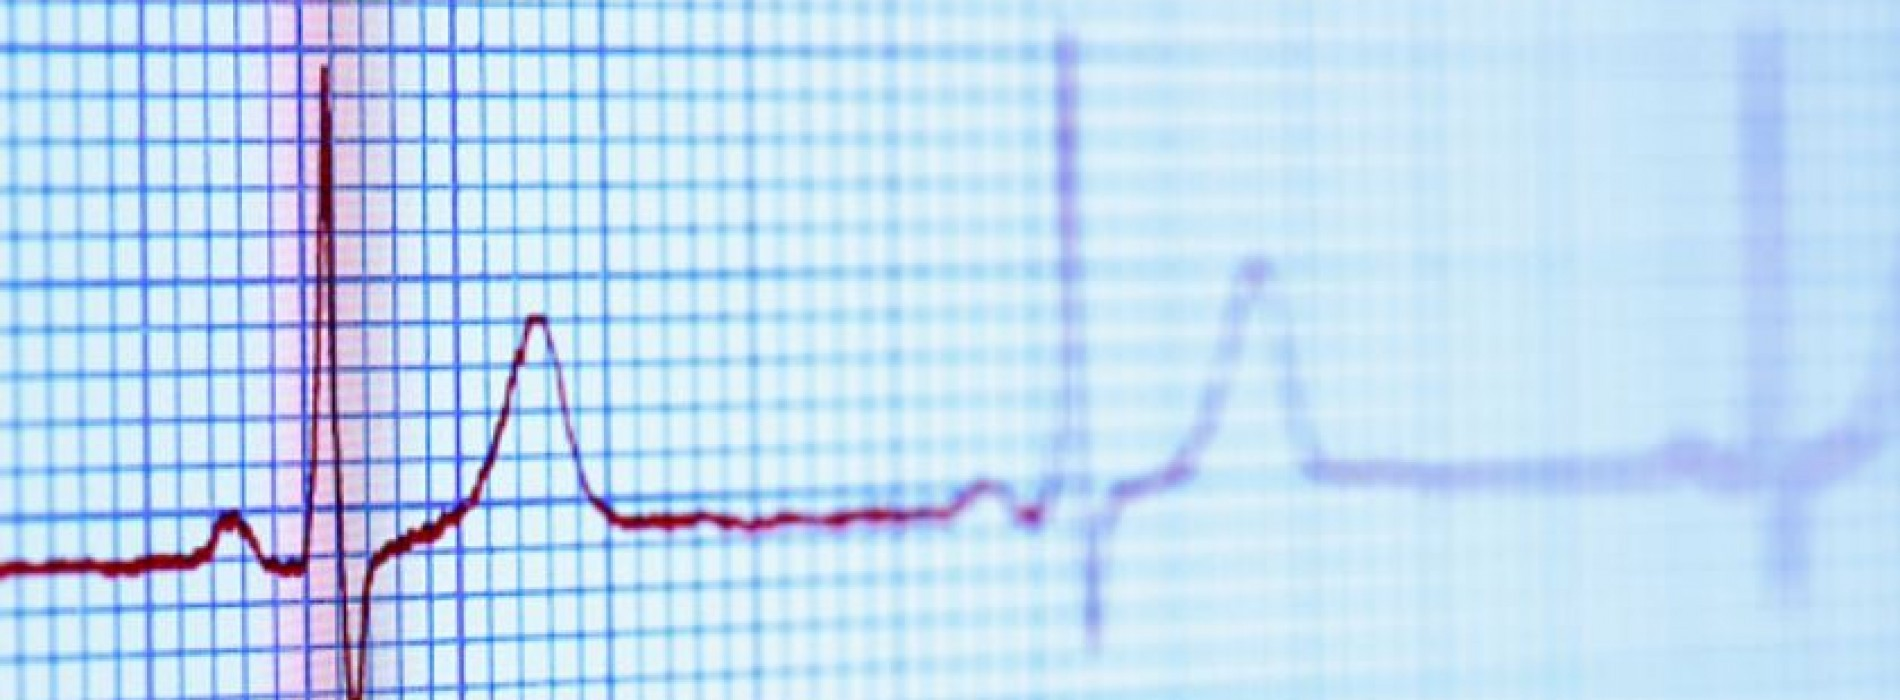 What is heart rate and benefits of the heart rate monitoring?